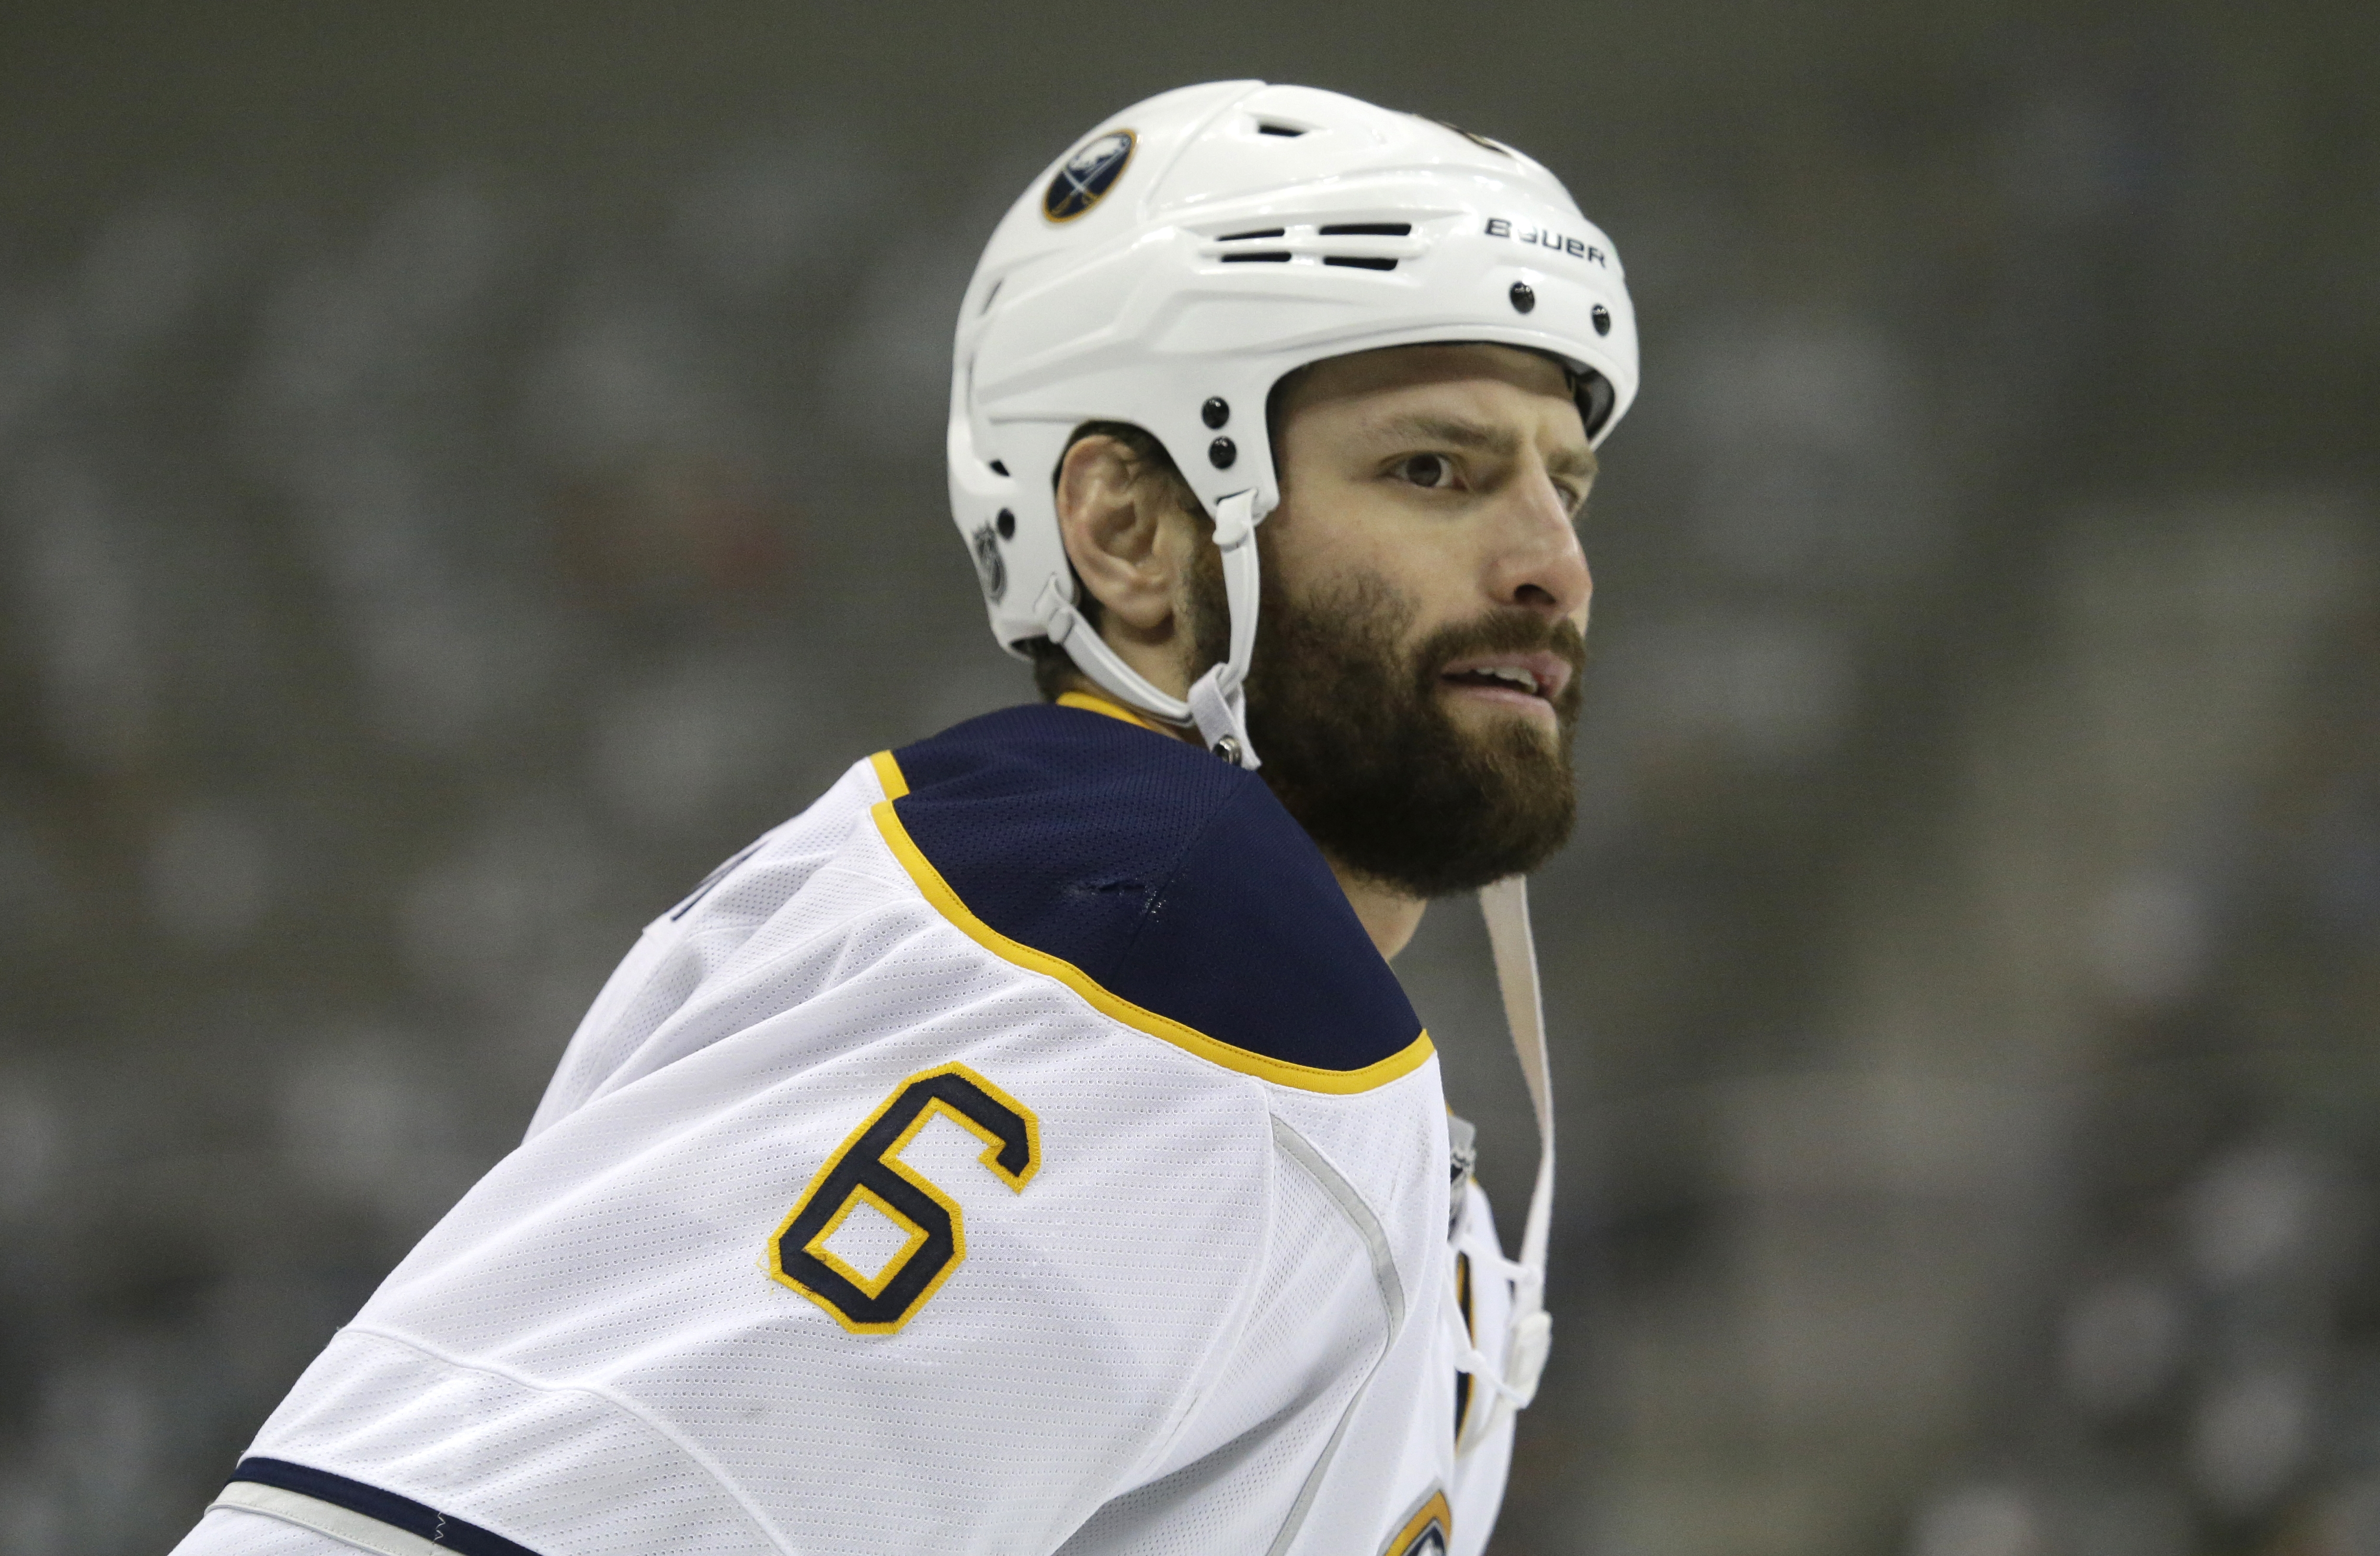 Buffalo Sabres defenseman Mike Weber (6) skates the ice during during warm ups before an NHL hockey game Monday, March 23, 2015, in Dallas. (AP Photo/LM Otero)